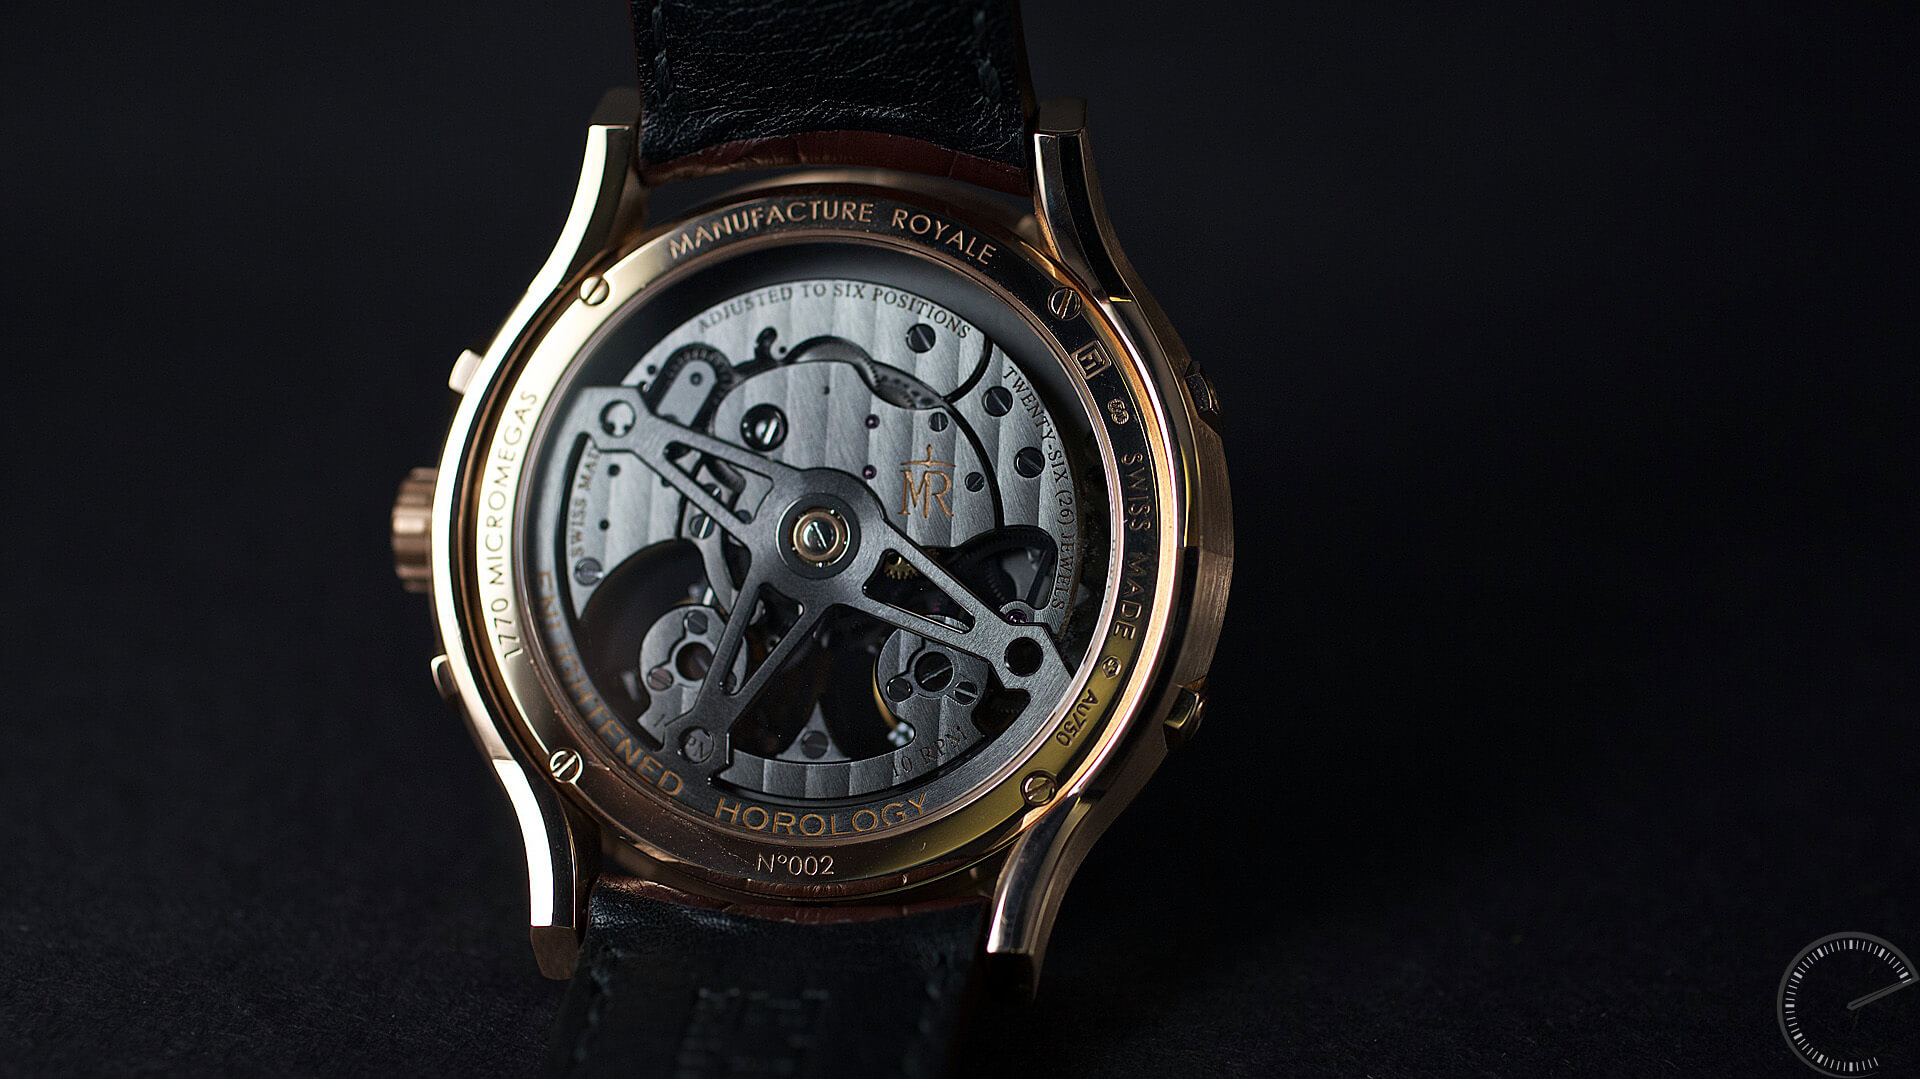 Manufacture Royale 1770 Micromegas_caseback - ESCAPEMENT magazine - watch blog by Angus Davies